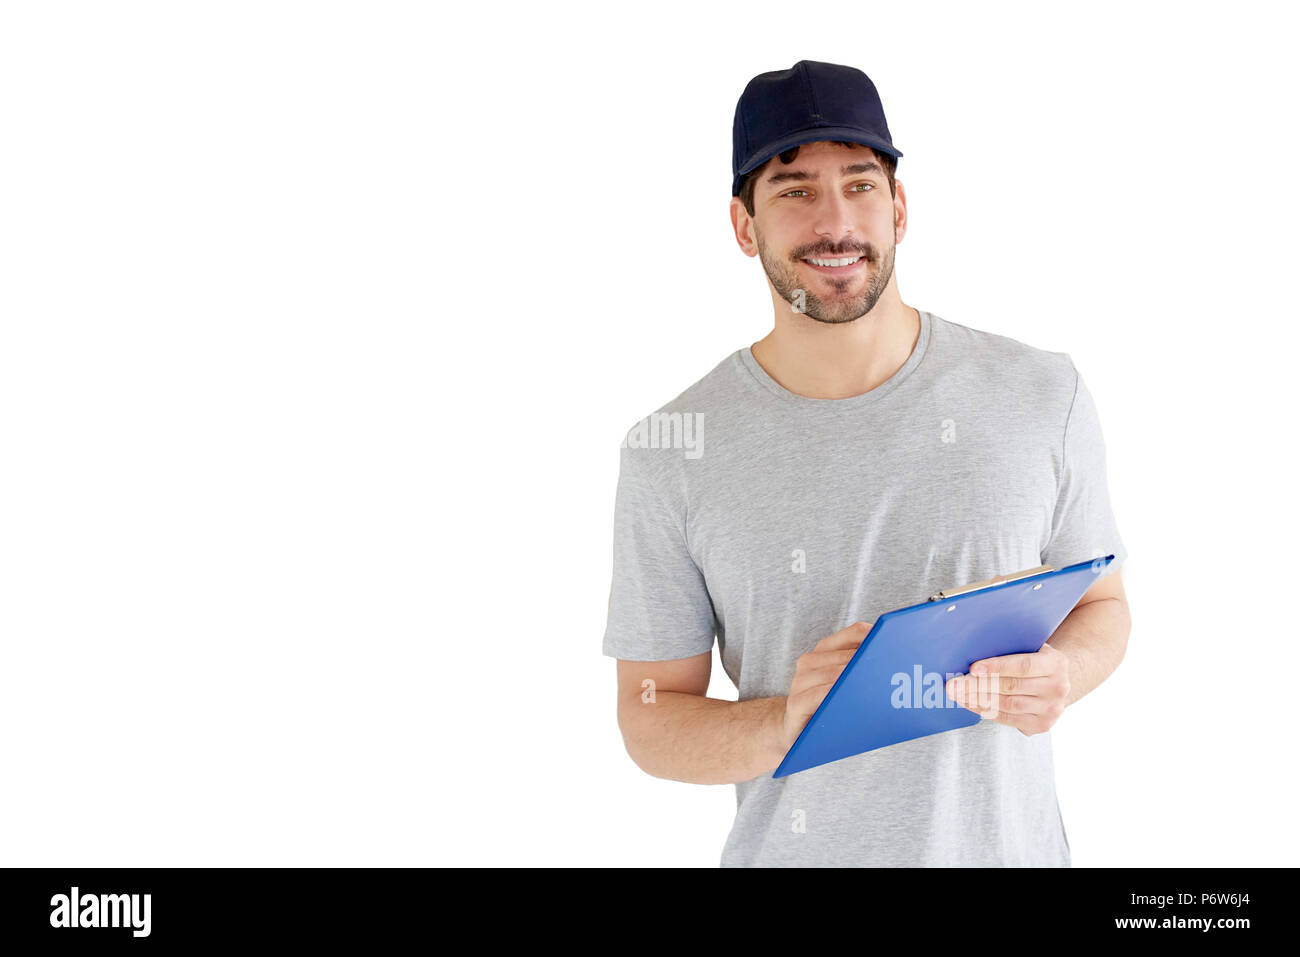 Portrait of handsome young man standing at isolated white background. Smiling carrying man wearing baseball cap and holding clipboard in his hand. Stock Photo